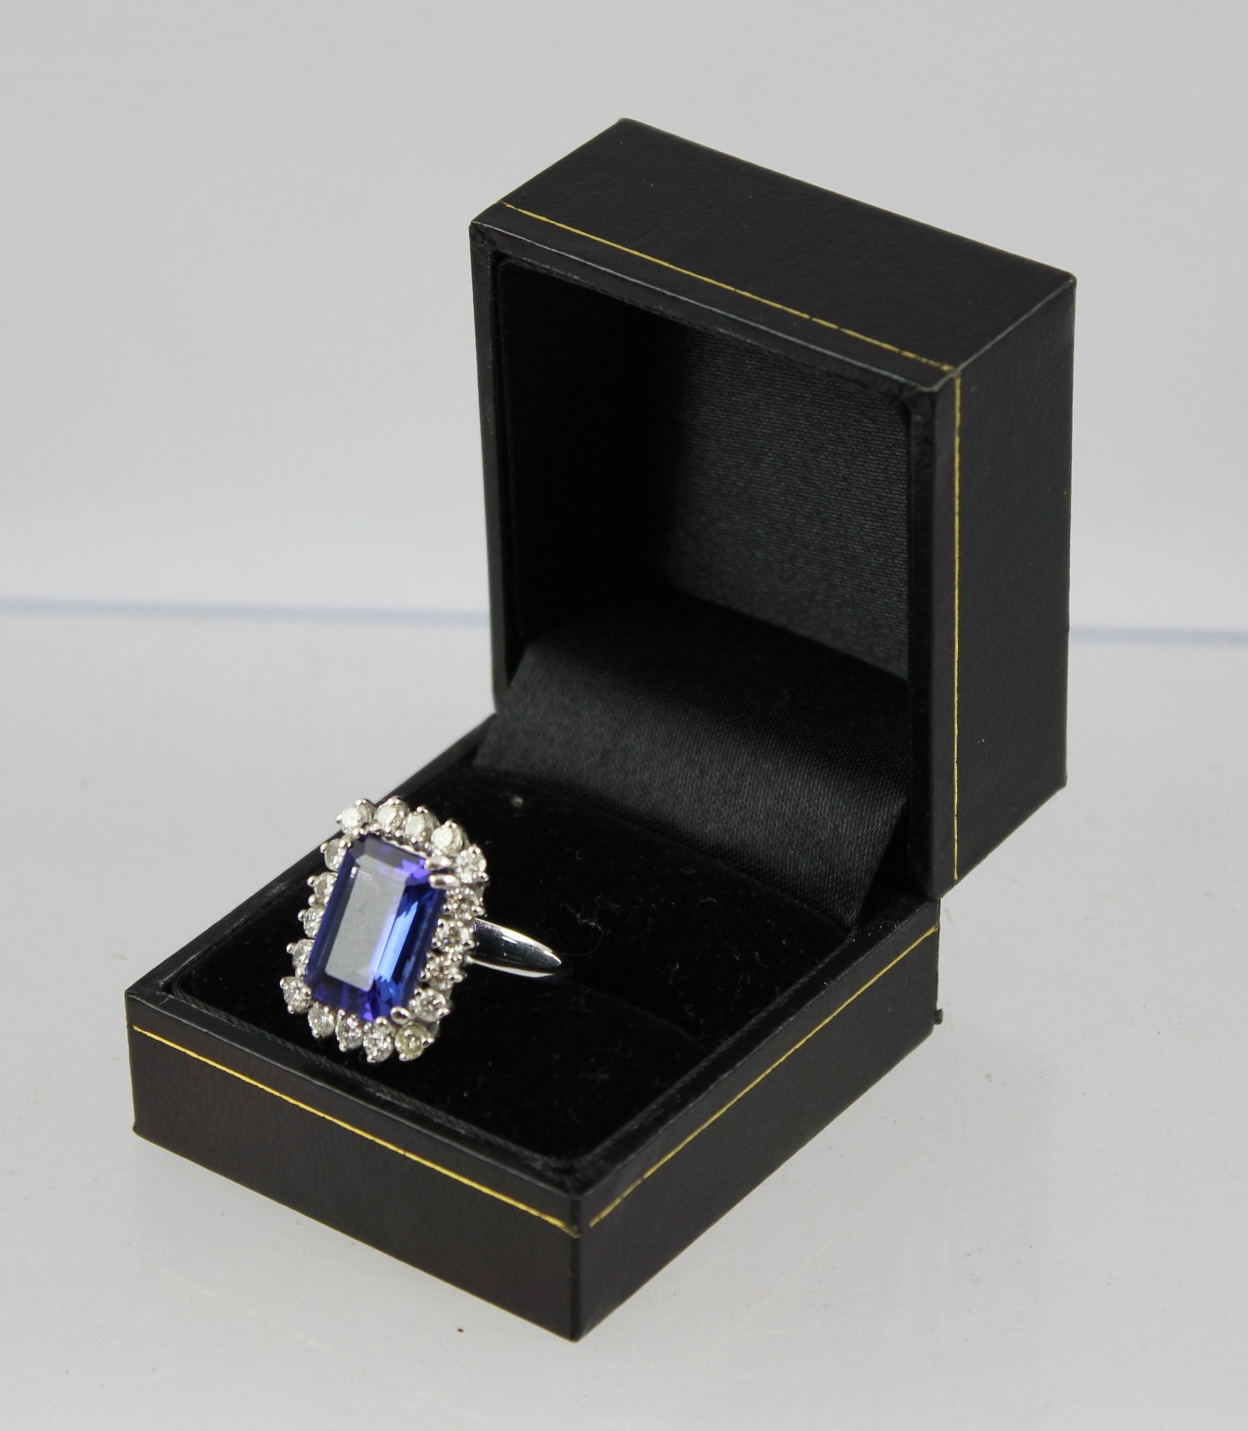 A BLUE TANZANITE & DIAMOND CLUSTER RING, having a trap cut central stone bordered by eighteen brilliants, in rhodium finished white gold coloured metal claw setting, unmarked, setting tests 18ct., centre stone approximately 8cts.)